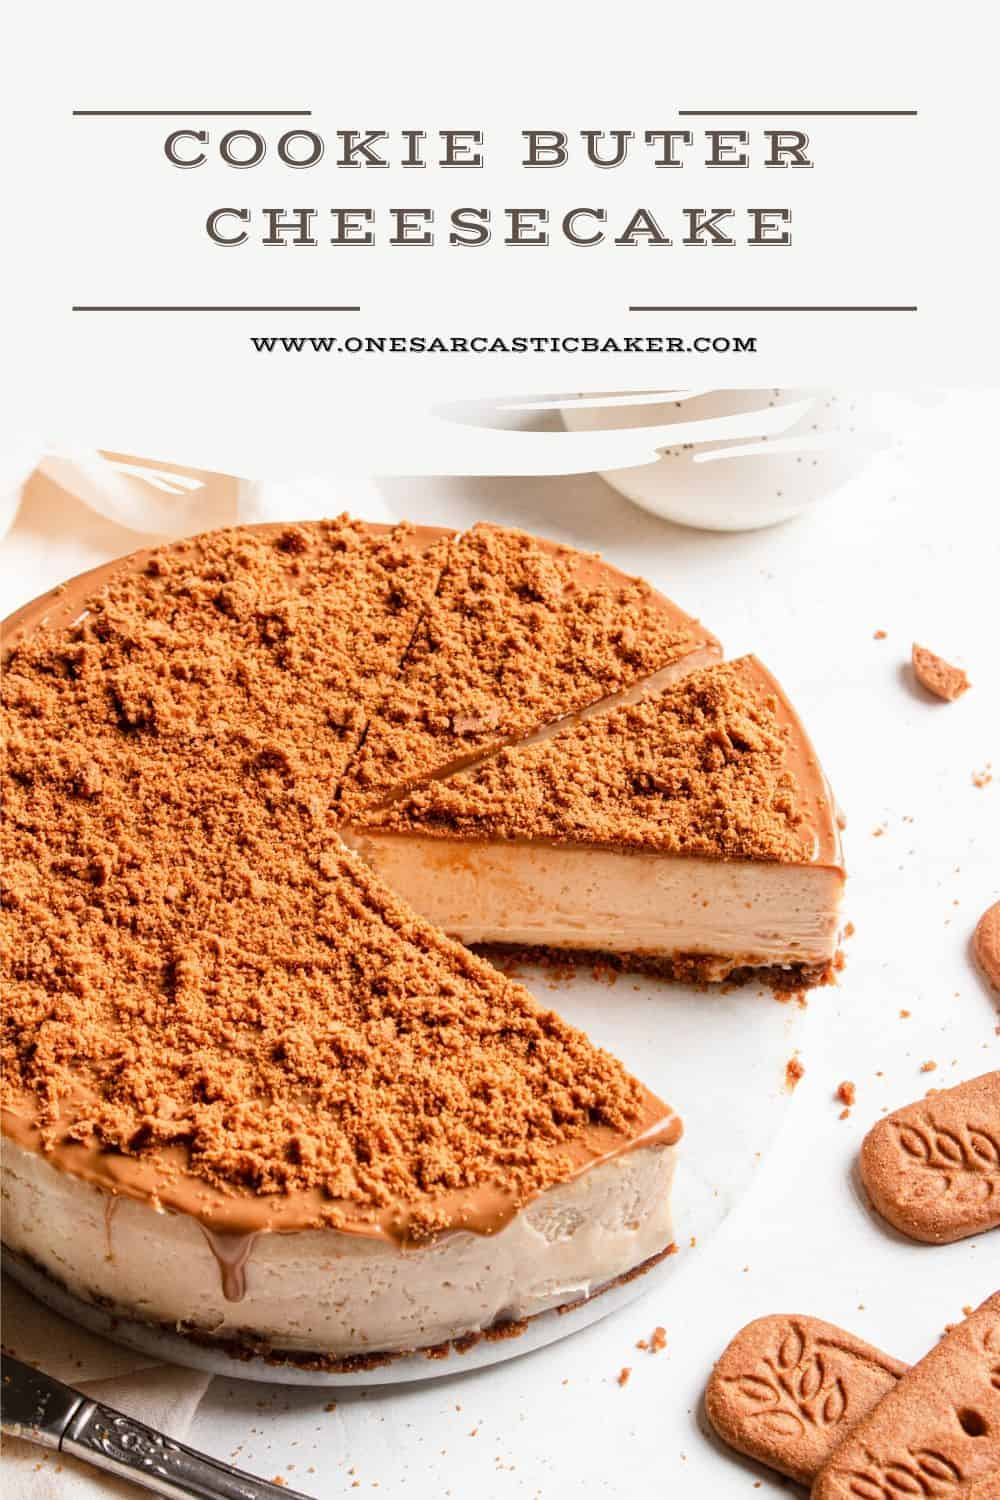 Silky smooth, creamy and ridiculously delicious Cookie Butter Cheesecake recipe. This is an easy recipe using speculoos cookies is a great spring and easter recipe.  |#cheesecake #cheesecakerecipe #easycheesecakerecipe #cookiebuttercheesecake #cookiebutterdessert #speculooscookies #easterrecipe #springrecipe|